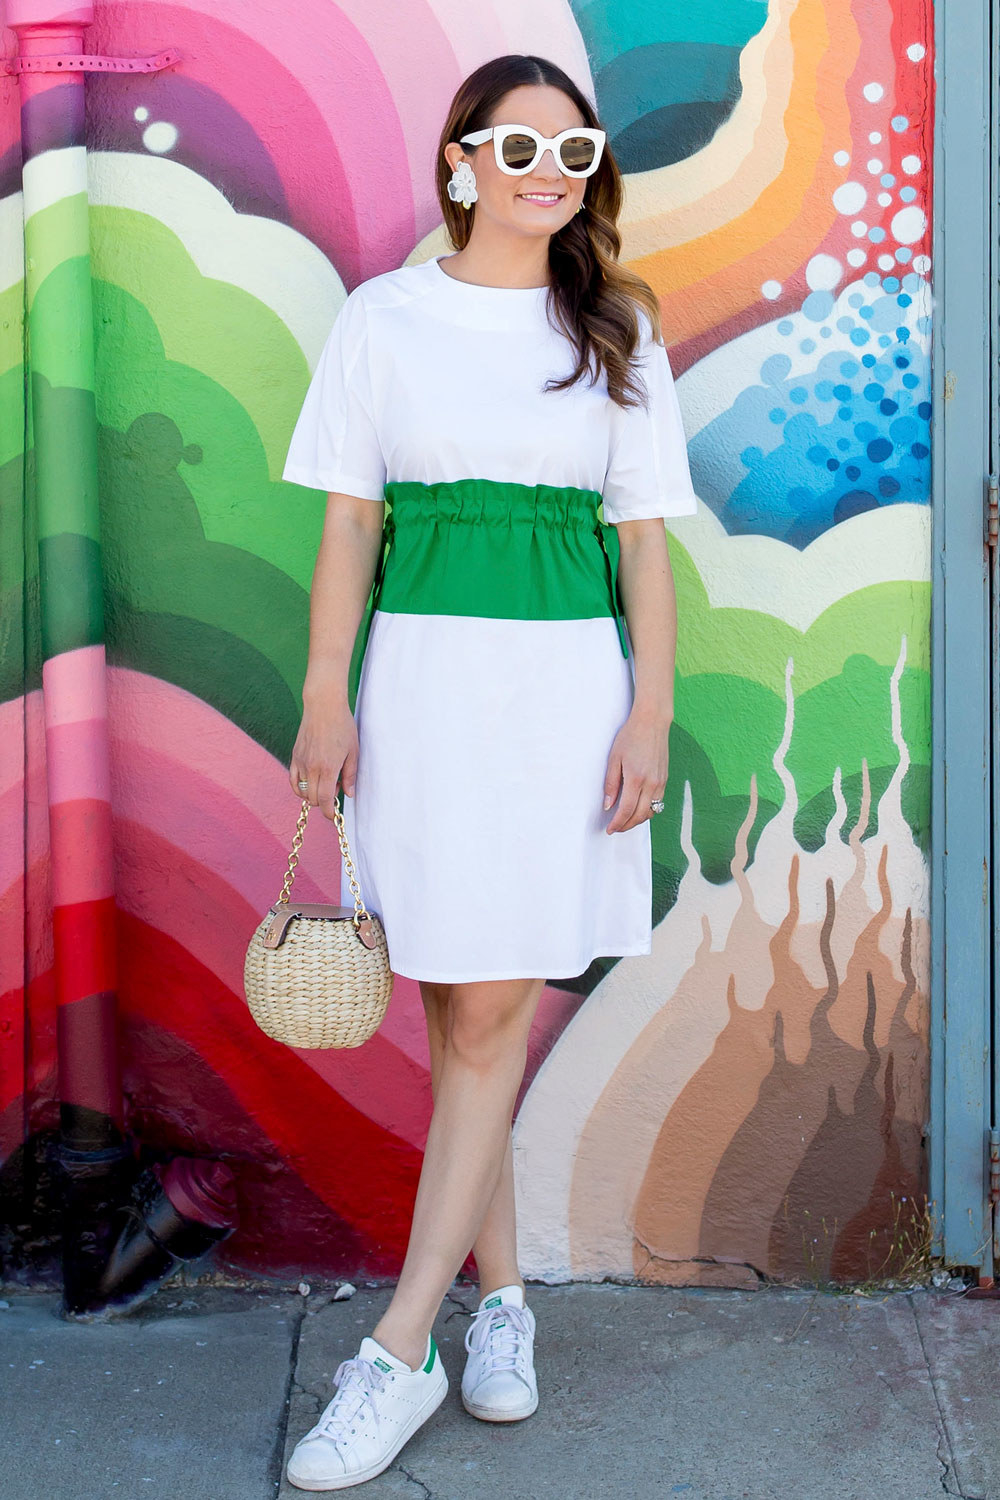 Yes to all of this. We love the fun green colorblock dress paired with comfy all-white Adidas tennis shoes.